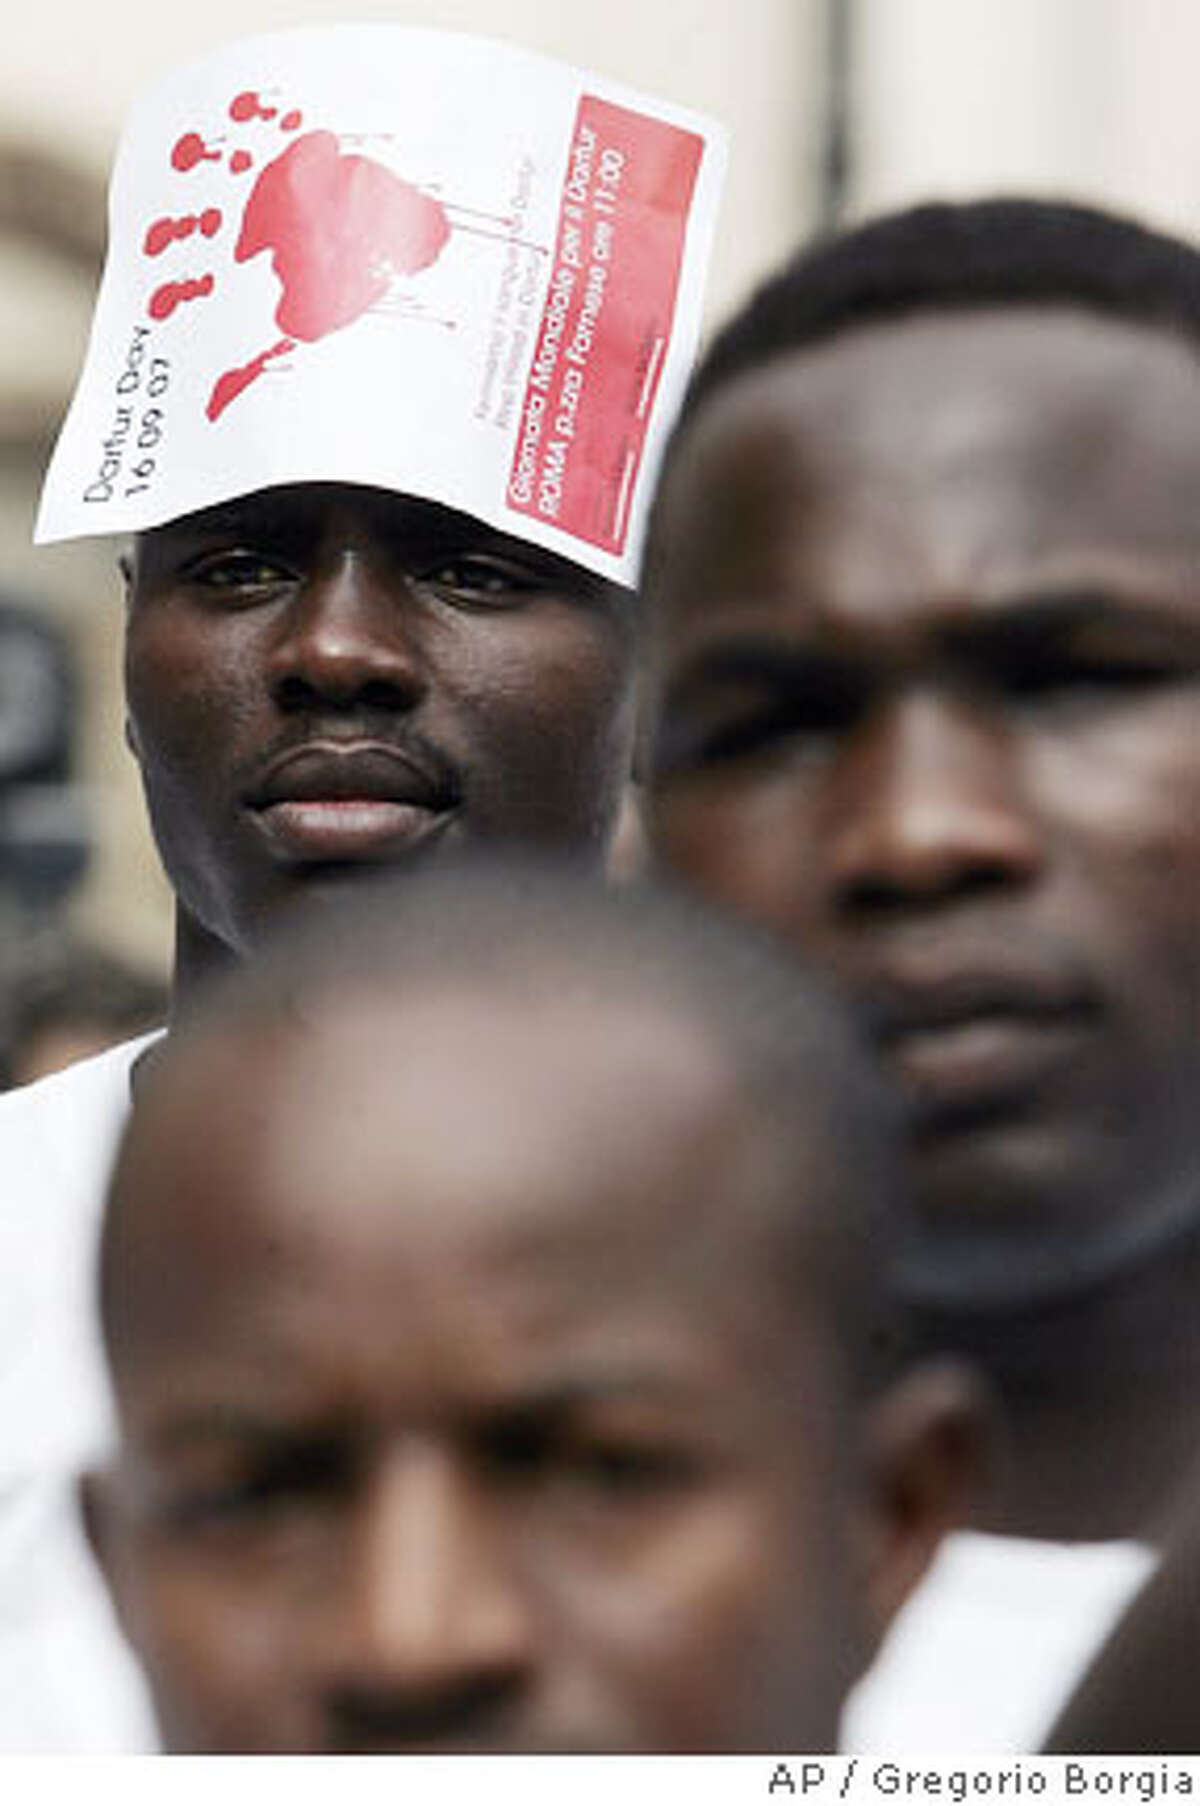 Sudanese citizens stage a demonstration to demand an immediate cease-fire in Sudan's Darfur region and the swift deployment of an expanded peacekeeping force there, Rome, Italy, Sunday, Sept. 16, 2007. (AP Photo/Gregorio Borgia)